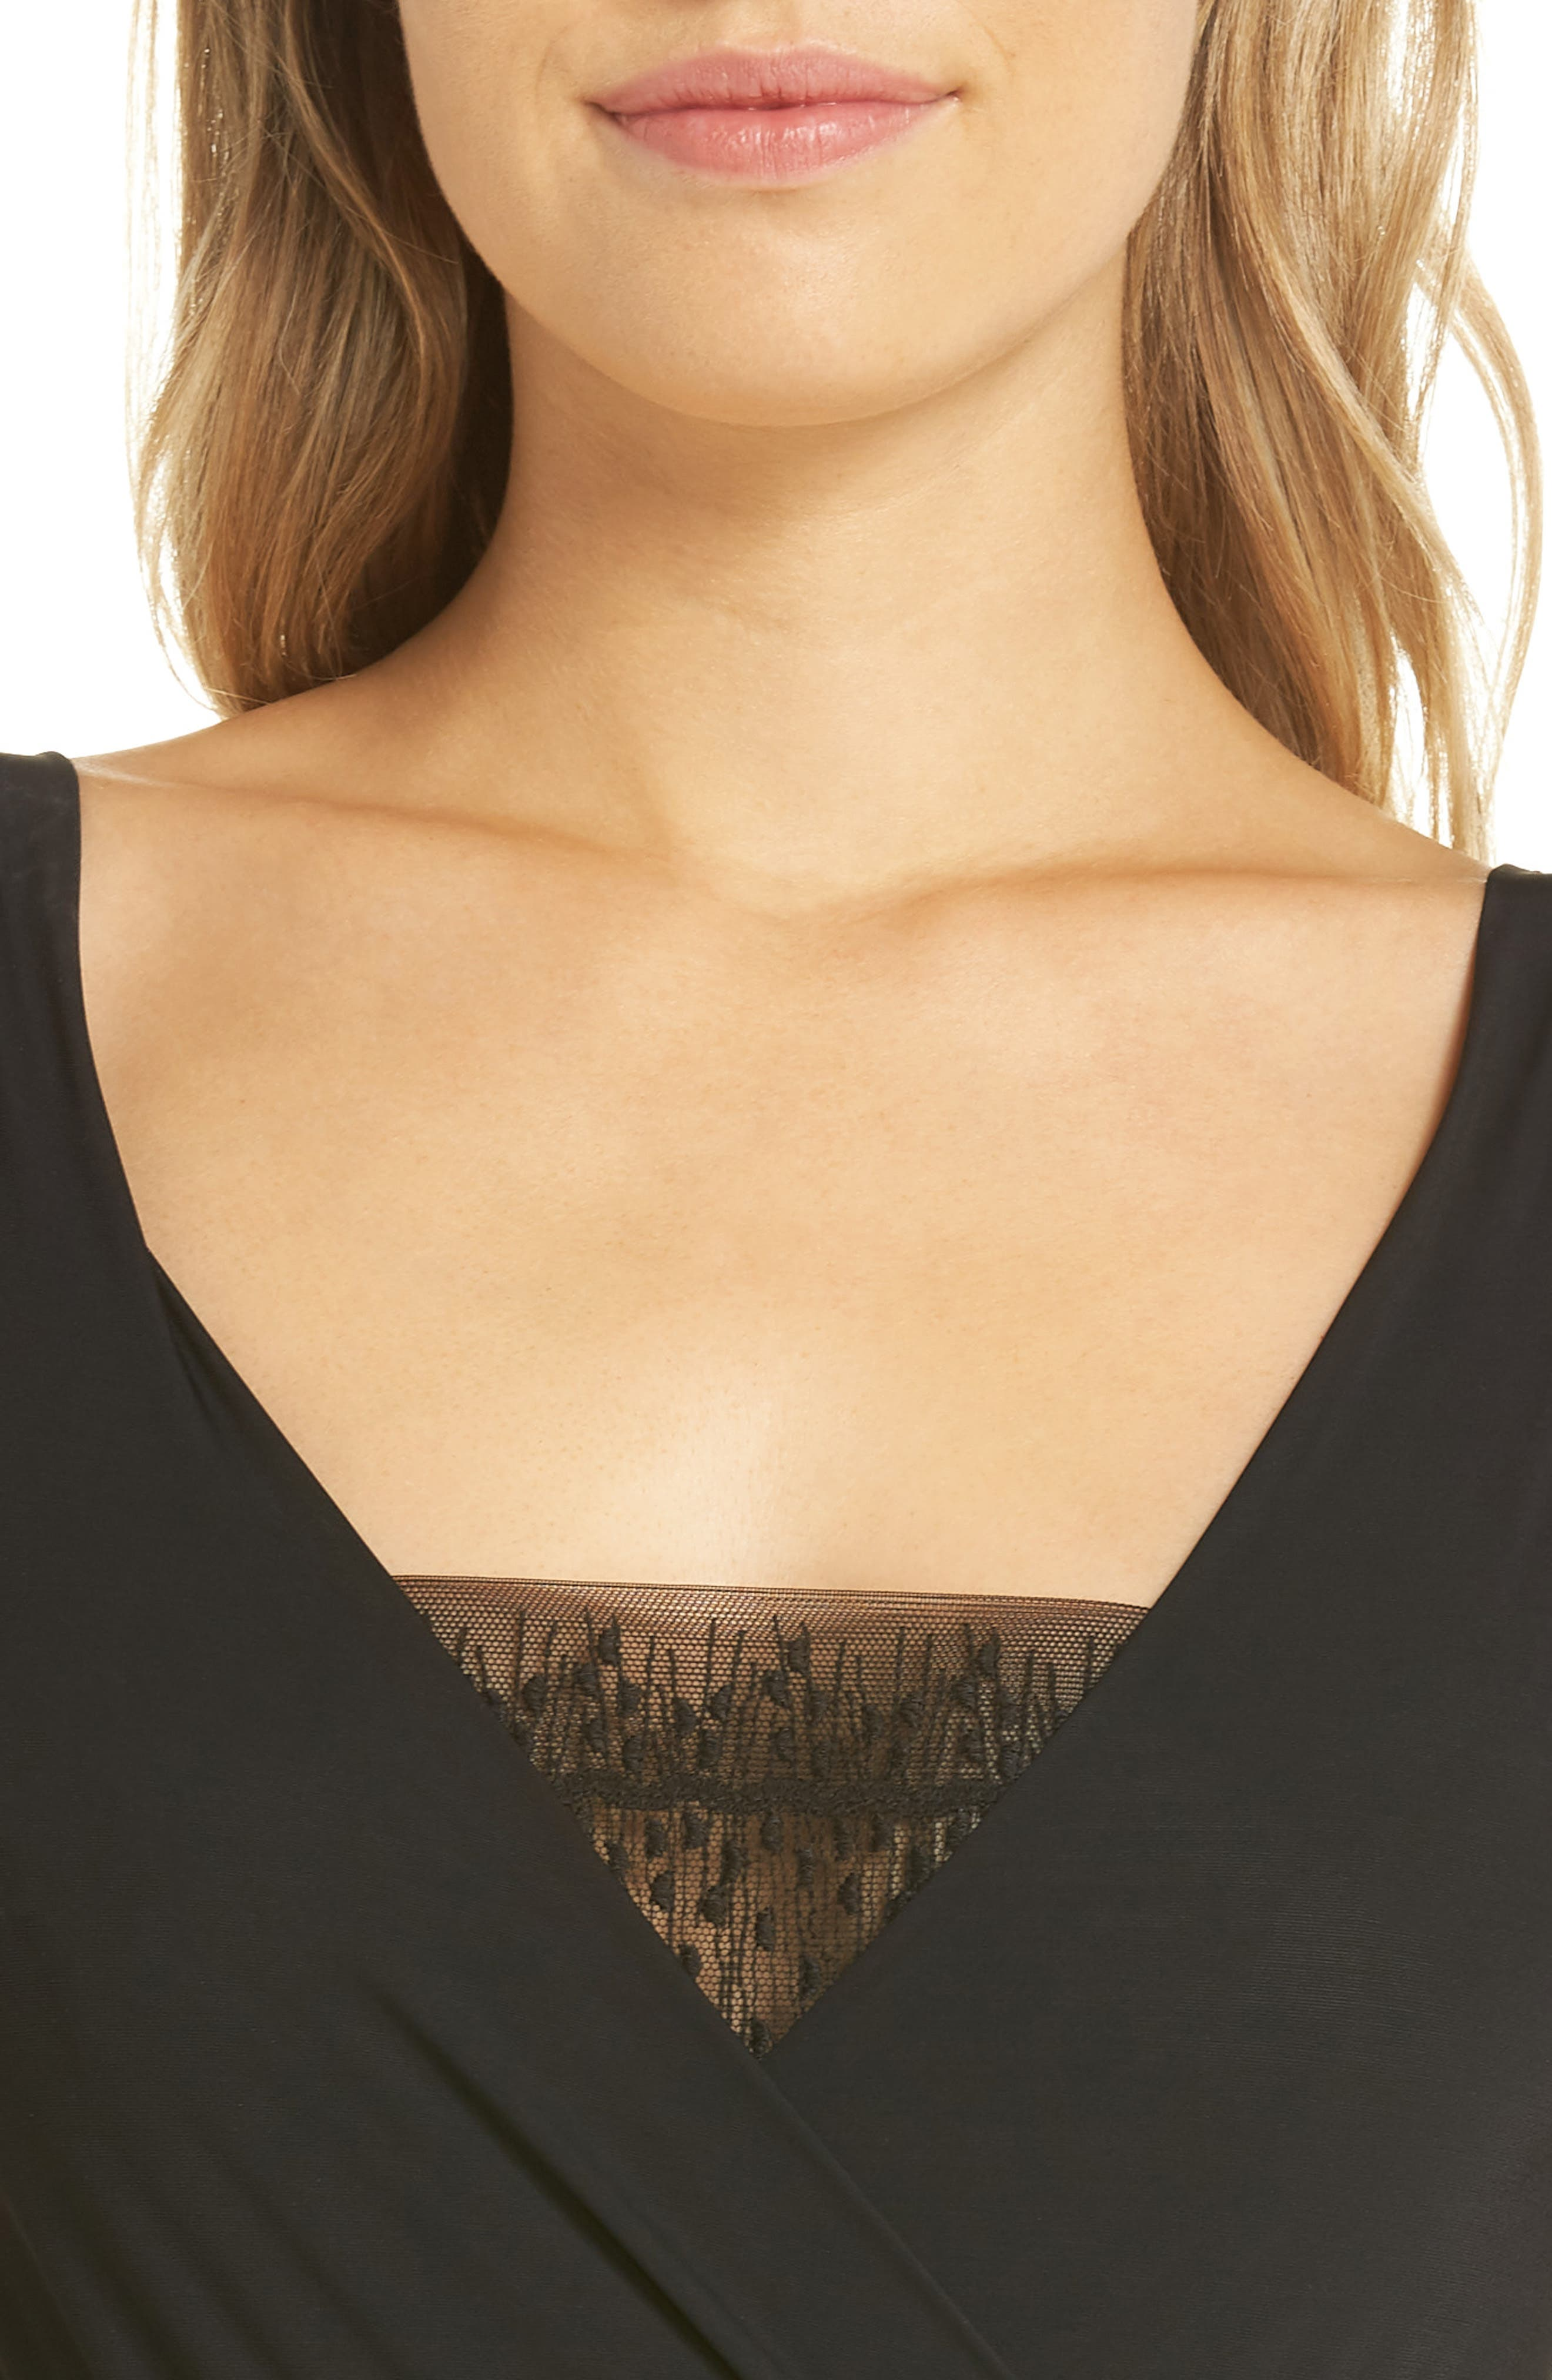 Imprevue Bodysuit,                             Alternate thumbnail 4, color,                             001